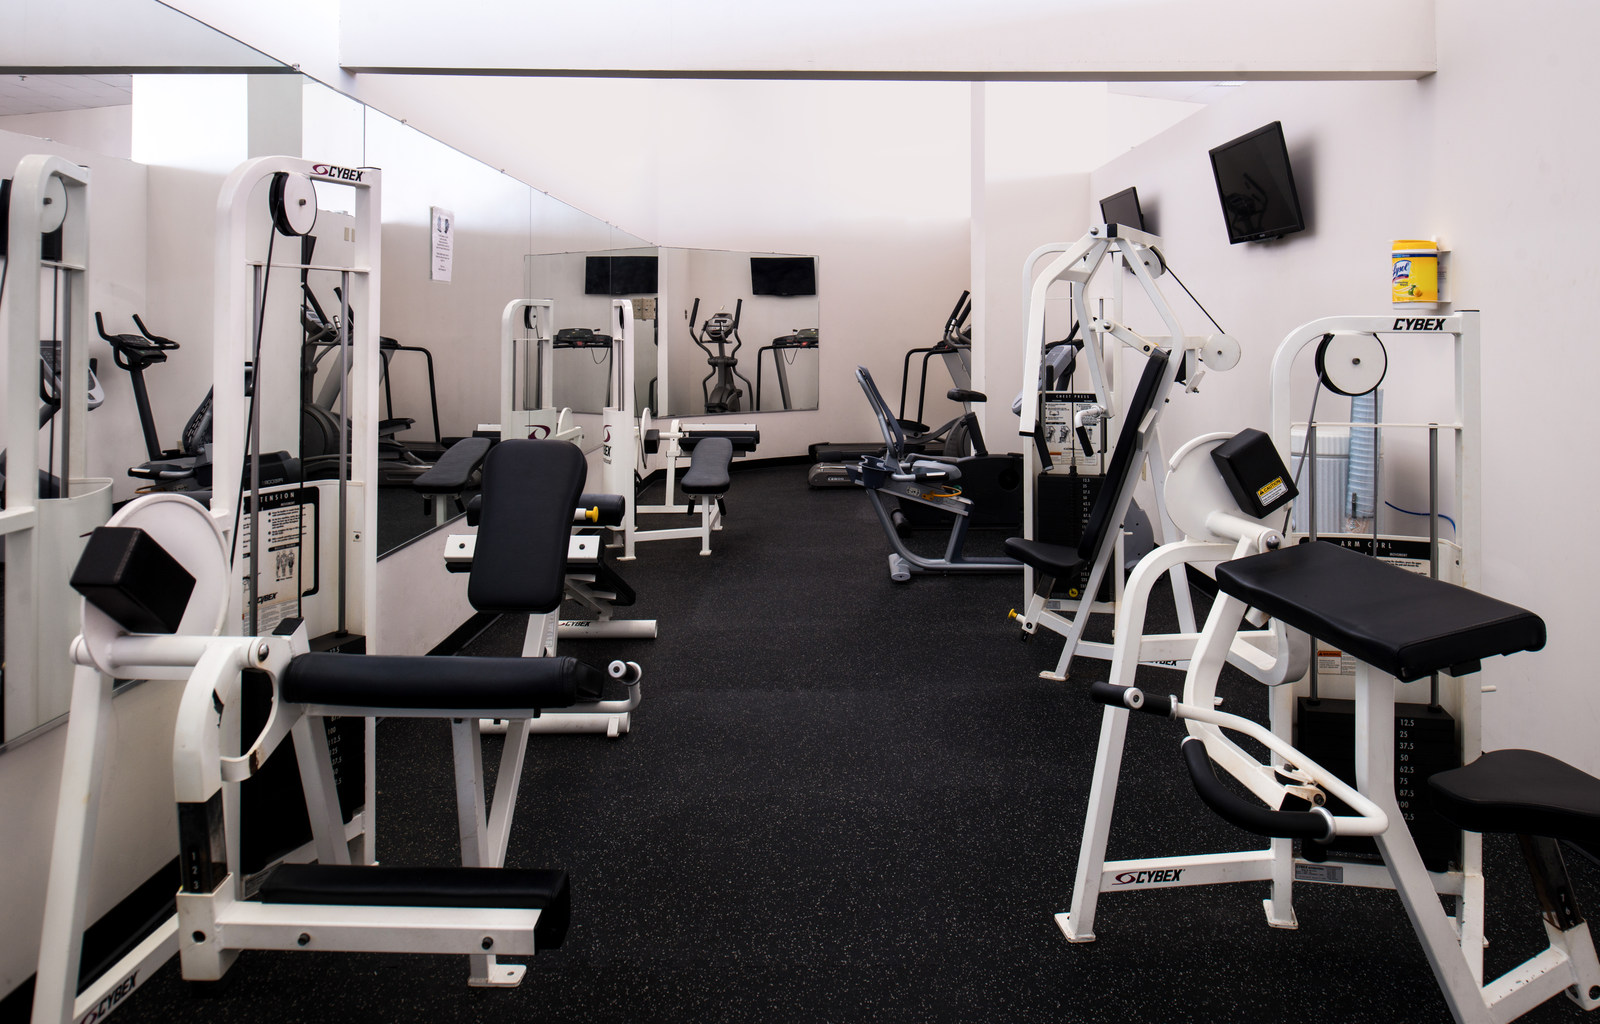 Gym 1 Amenities